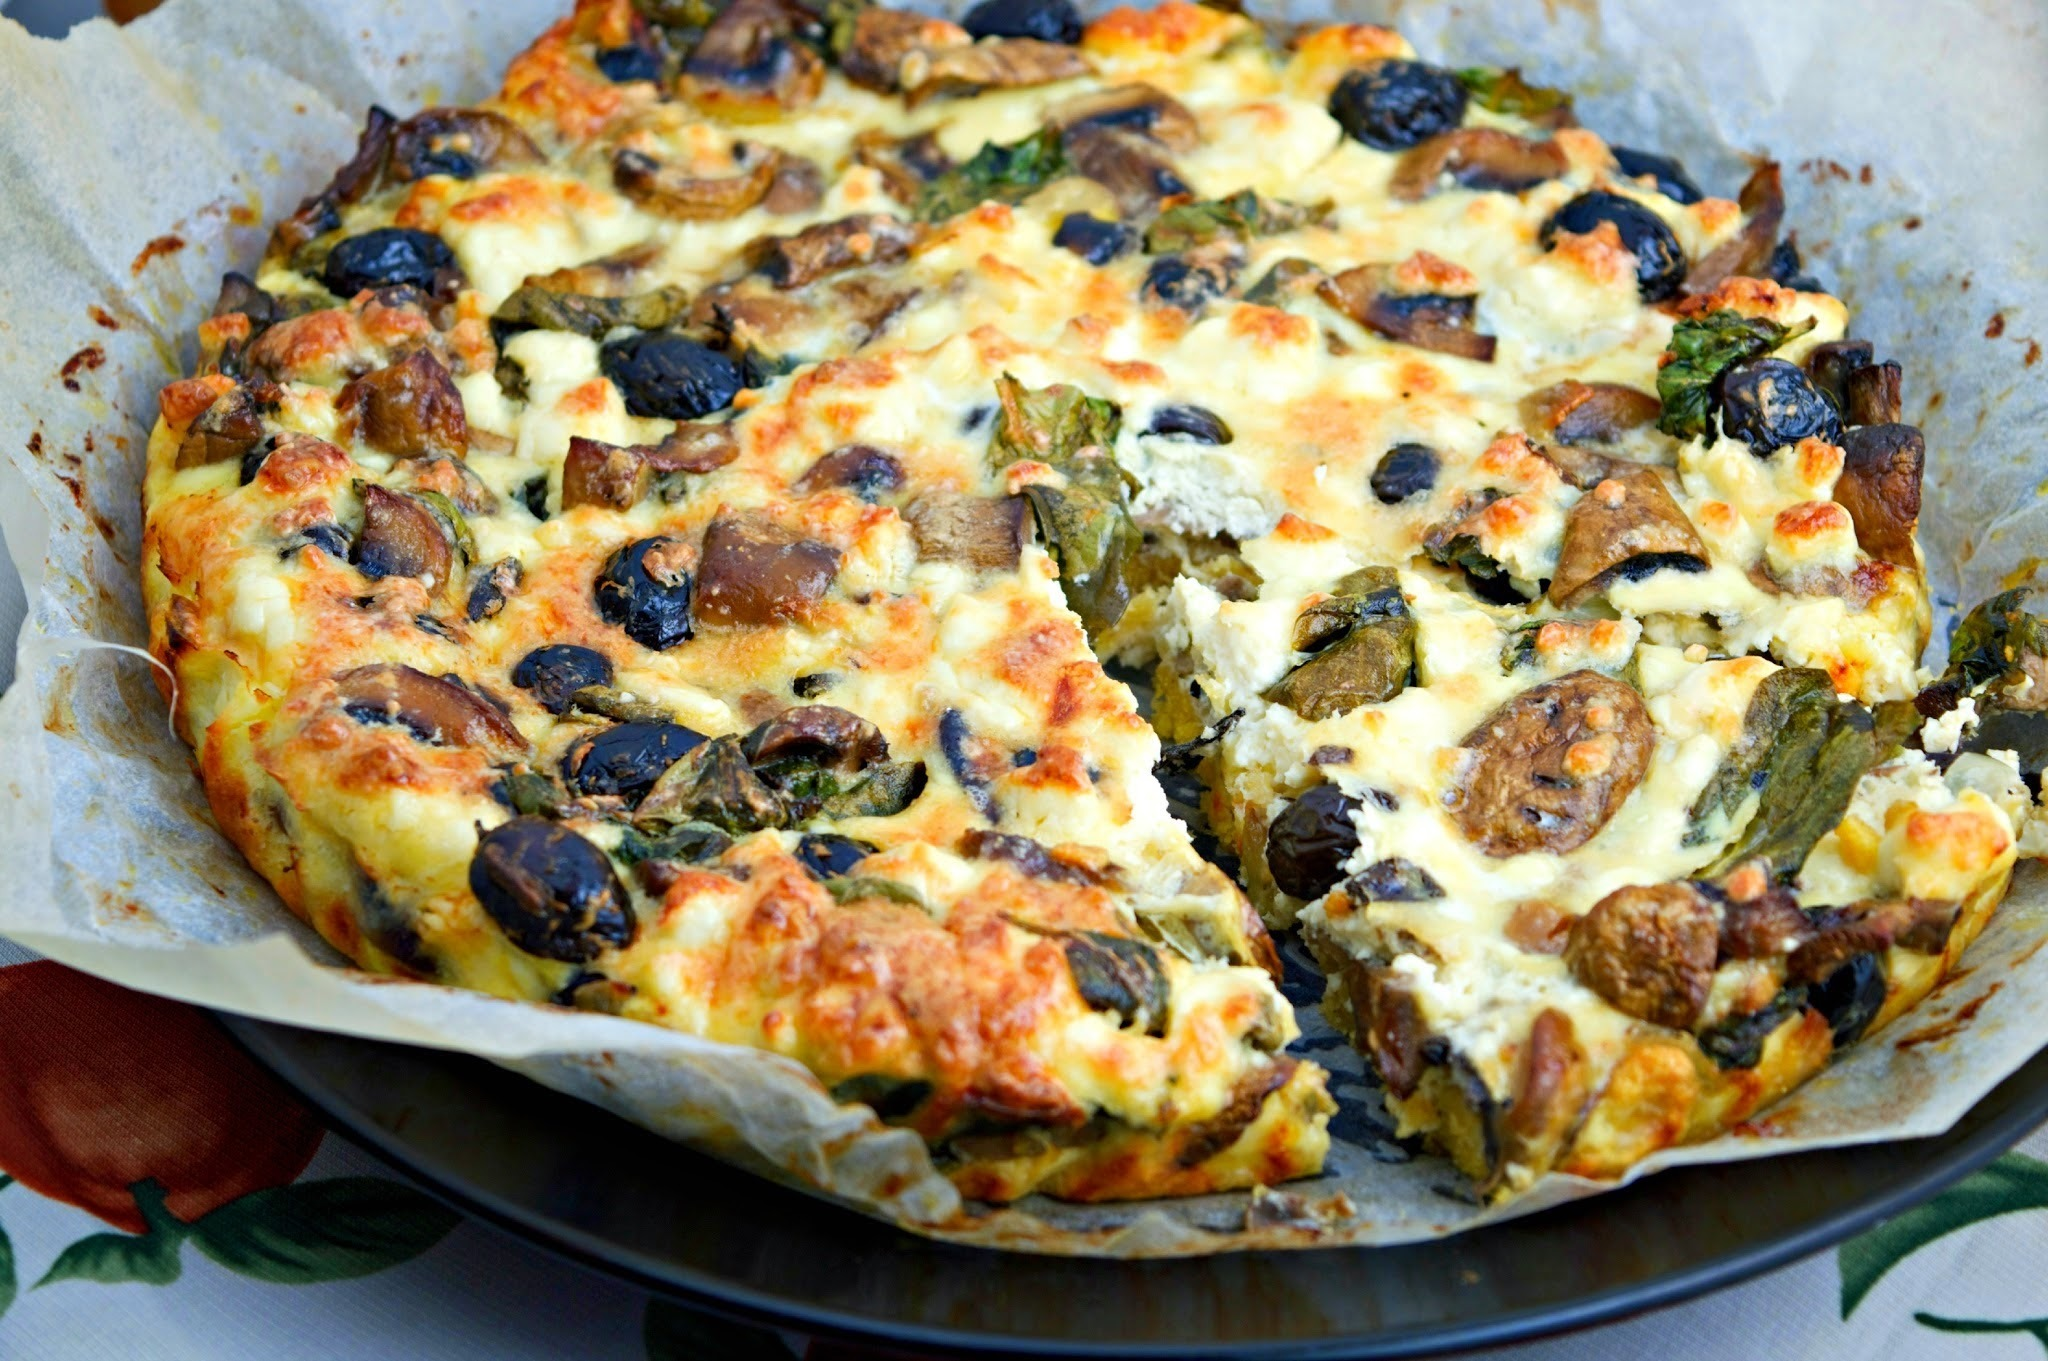 Meatless Monday: Vegetarian Frittata with Mushrooms, Spinach & Black Olives